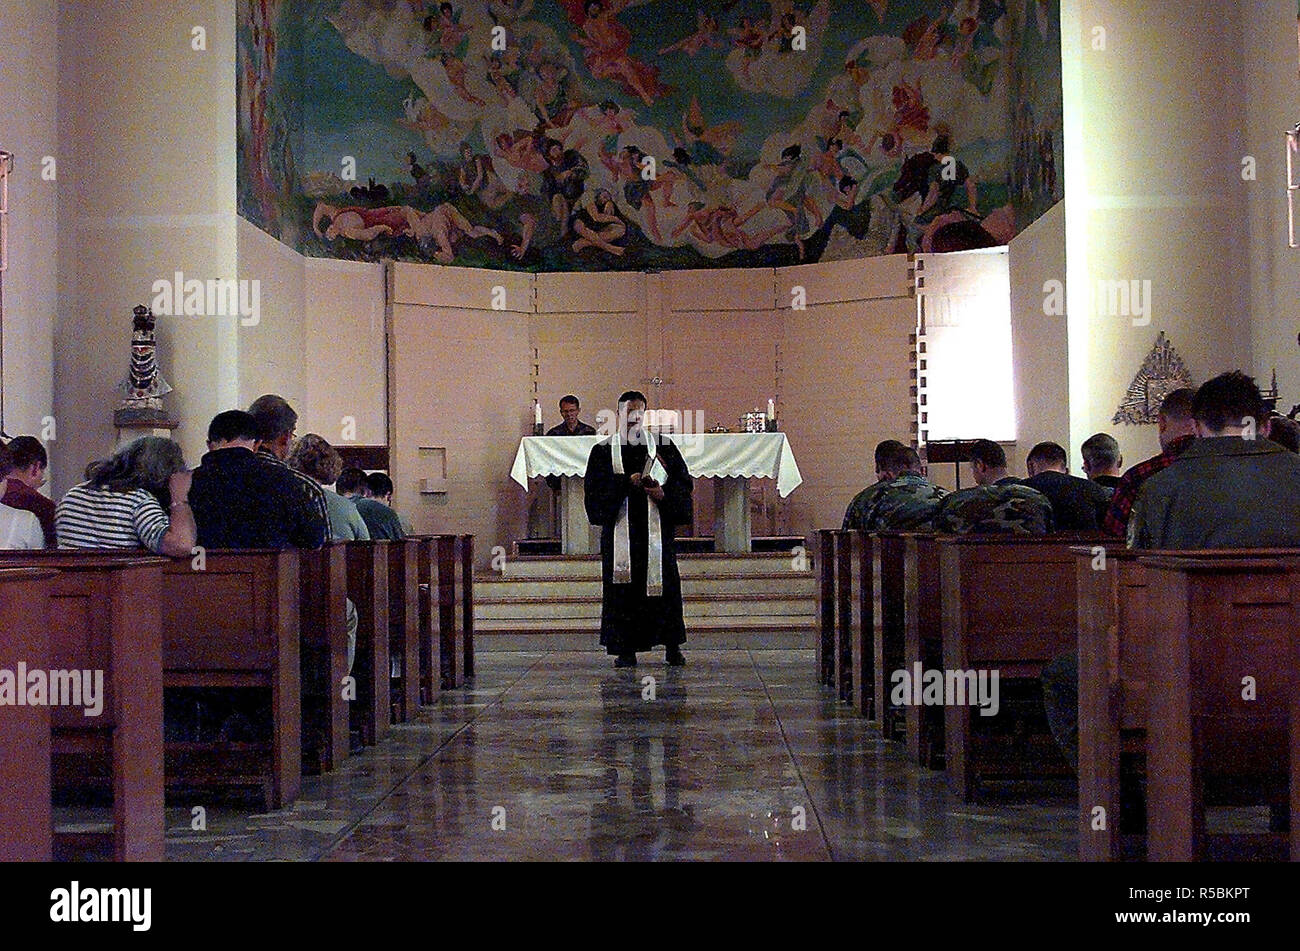 1999 - ALLIED FORCE -  protestant chaplin preaches to the congregation as part of the Easter Sunday Church service held on Aviano Air Base Italy's Tent city church - Stock Image